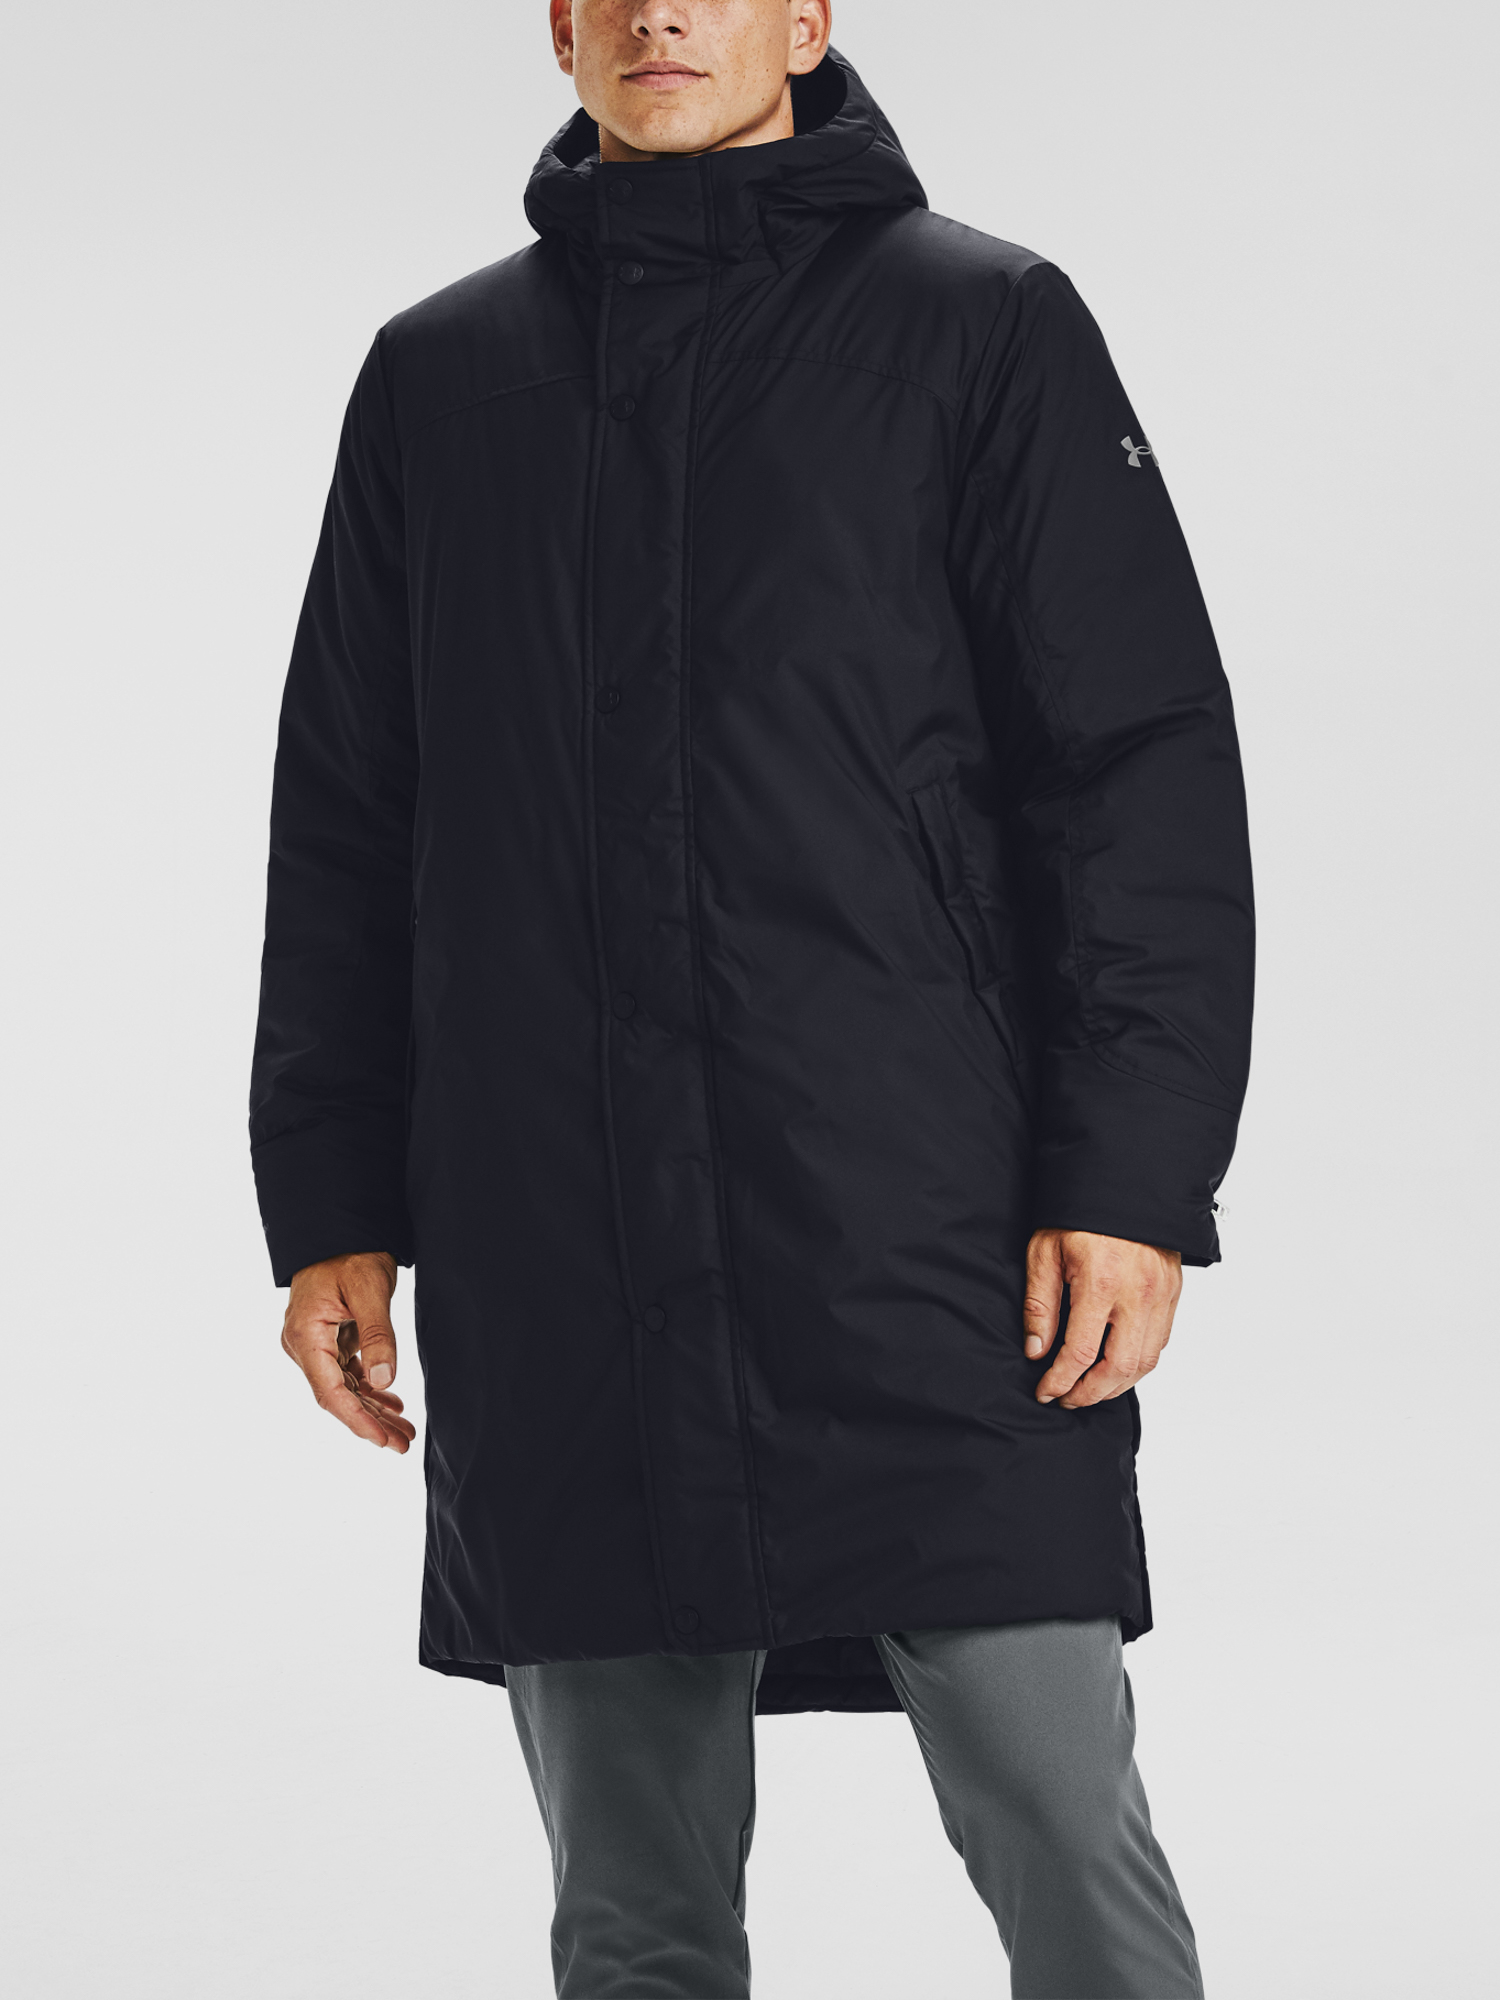 Bunda Under Armour Armour Insulated Bench Coat-BLK (1)